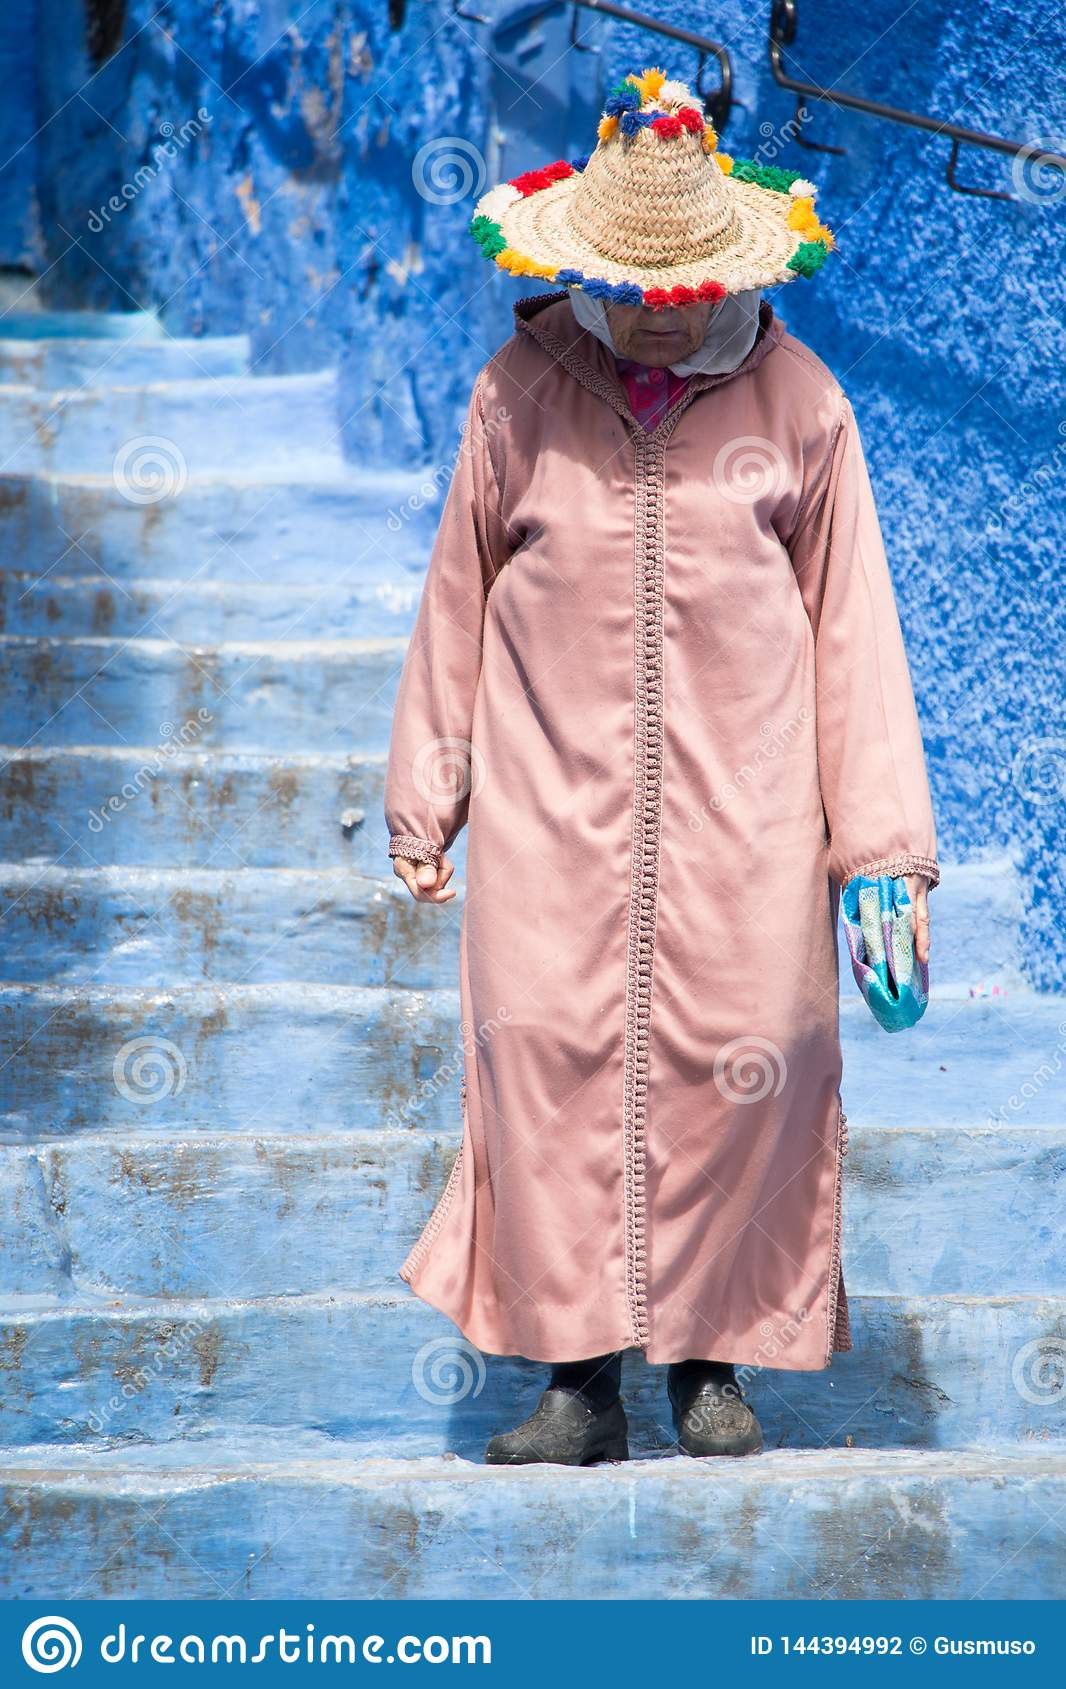 An old woman strolls through the streets of Chefchaouen, the blue town in Morocco, with her traditional costume